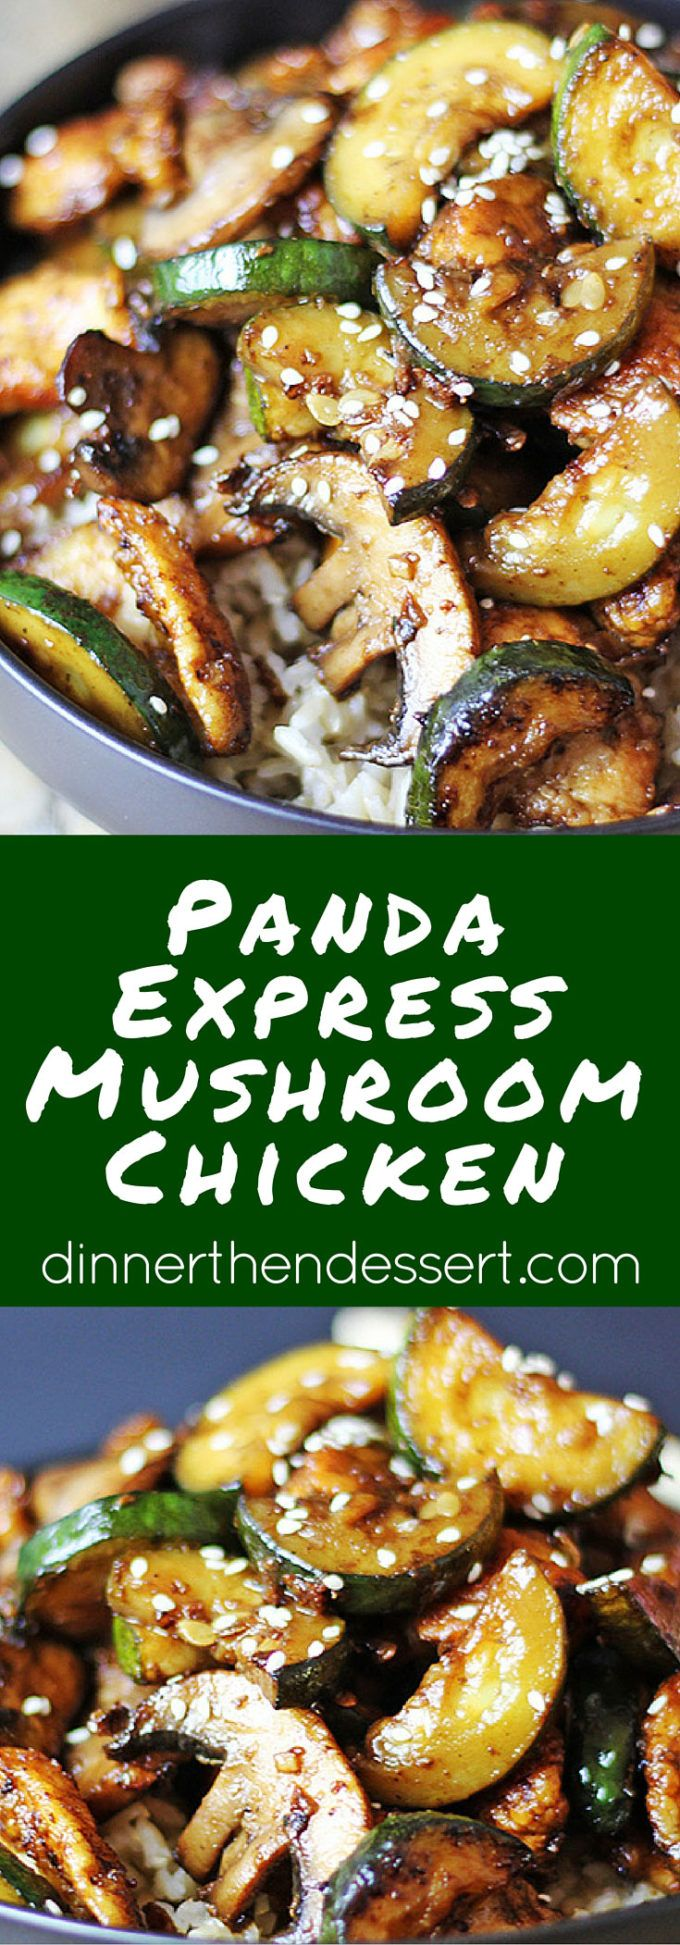 (Use arrowroot, grapeseed oil, tamari, and sub 5 drops stevia for sugar) Panda Express Mushroom Chicken in just 20 minutes! You'll be sitting down to dinner faster than you could drive there and pick some up and come home! Lightly sauteed zucchini and mushrooms in a ginger and garlic sauce.